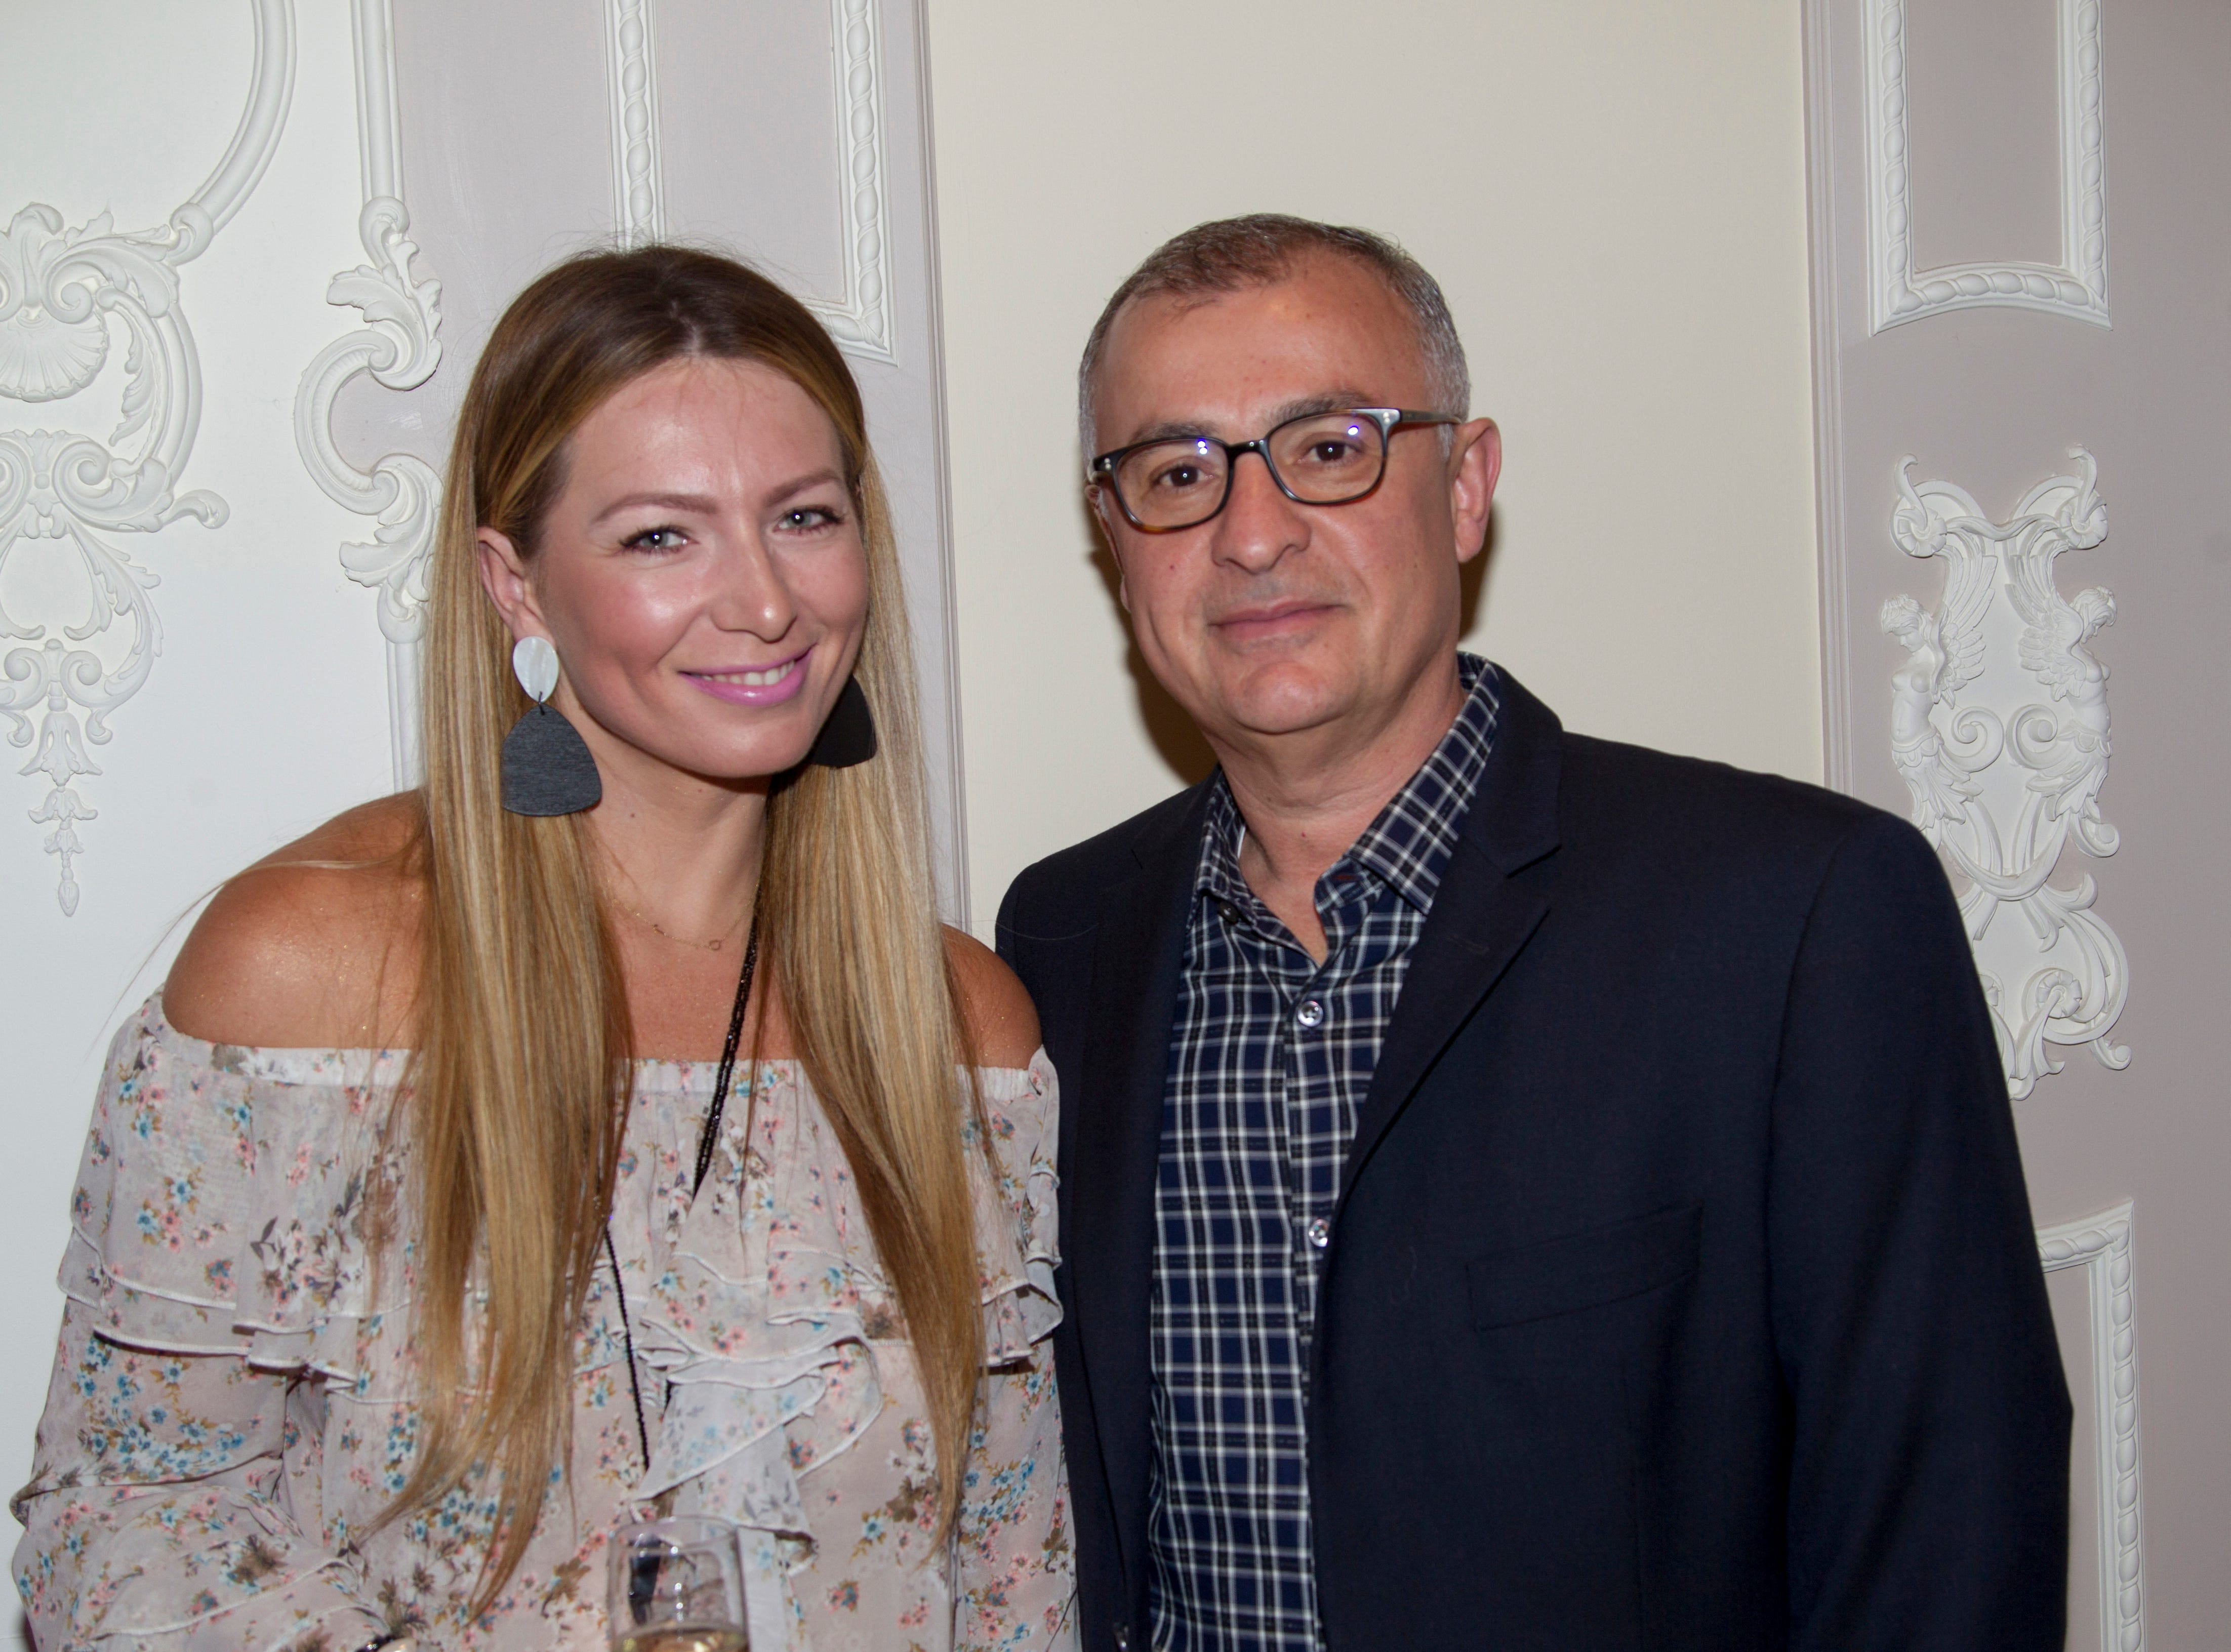 Justyna and Cabbad Kaminska. Saddle River Arts Council presents An Evening of Giving Back featureing Eric Genuis in Saddle River. 03/30/2019